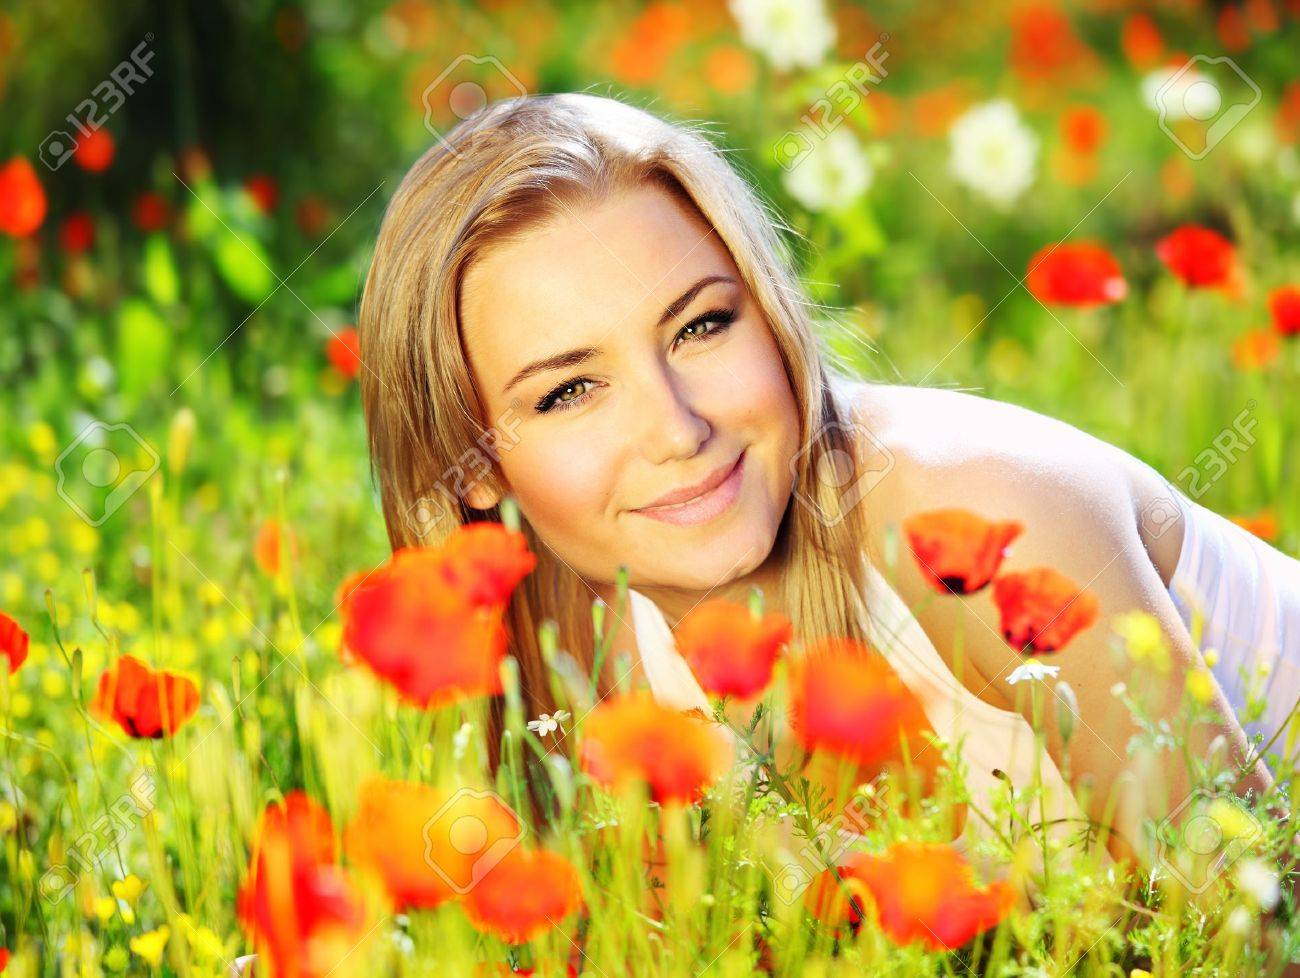 Young beautiful girl laying on the poppy flowers field, outdoor portrait, summer fun concept Stock Photo - 9642293